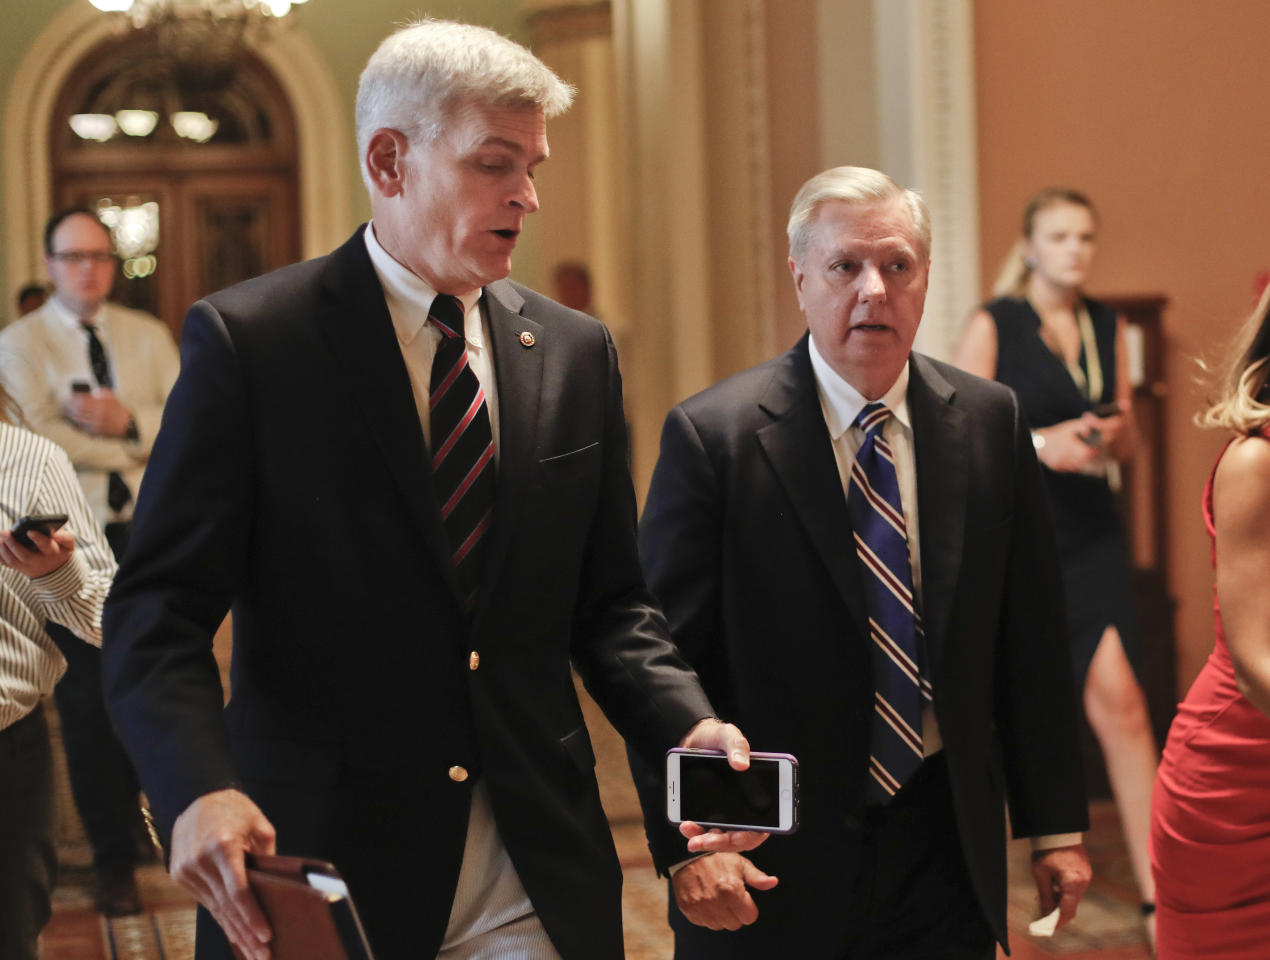 <p> FILE - In this July 13, 2017, file photo, Sen. Bill Cassidy, R-La., left, and Sen. Lindsey Graham, R-S.C., right, talk while walking to a meeting on Capitol Hill in Washington. Senate Republicans are planning a final, uphill push to erase President Barack Obama's health care law. But Democrats and their allies are going all-out to stop the drive. The initial Republican effort crashed in July in the GOP-run Senate. Majority Leader Mitch McConnell said after that defeat that he'd not revisit the issue without the votes to succeed. Graham and Cassidy are leading the new GOP charge and they'd transform much of Obama's law into block grants and let states decide how to spend the money. (AP Photo/Pablo Martinez Monsivais, File) </p>